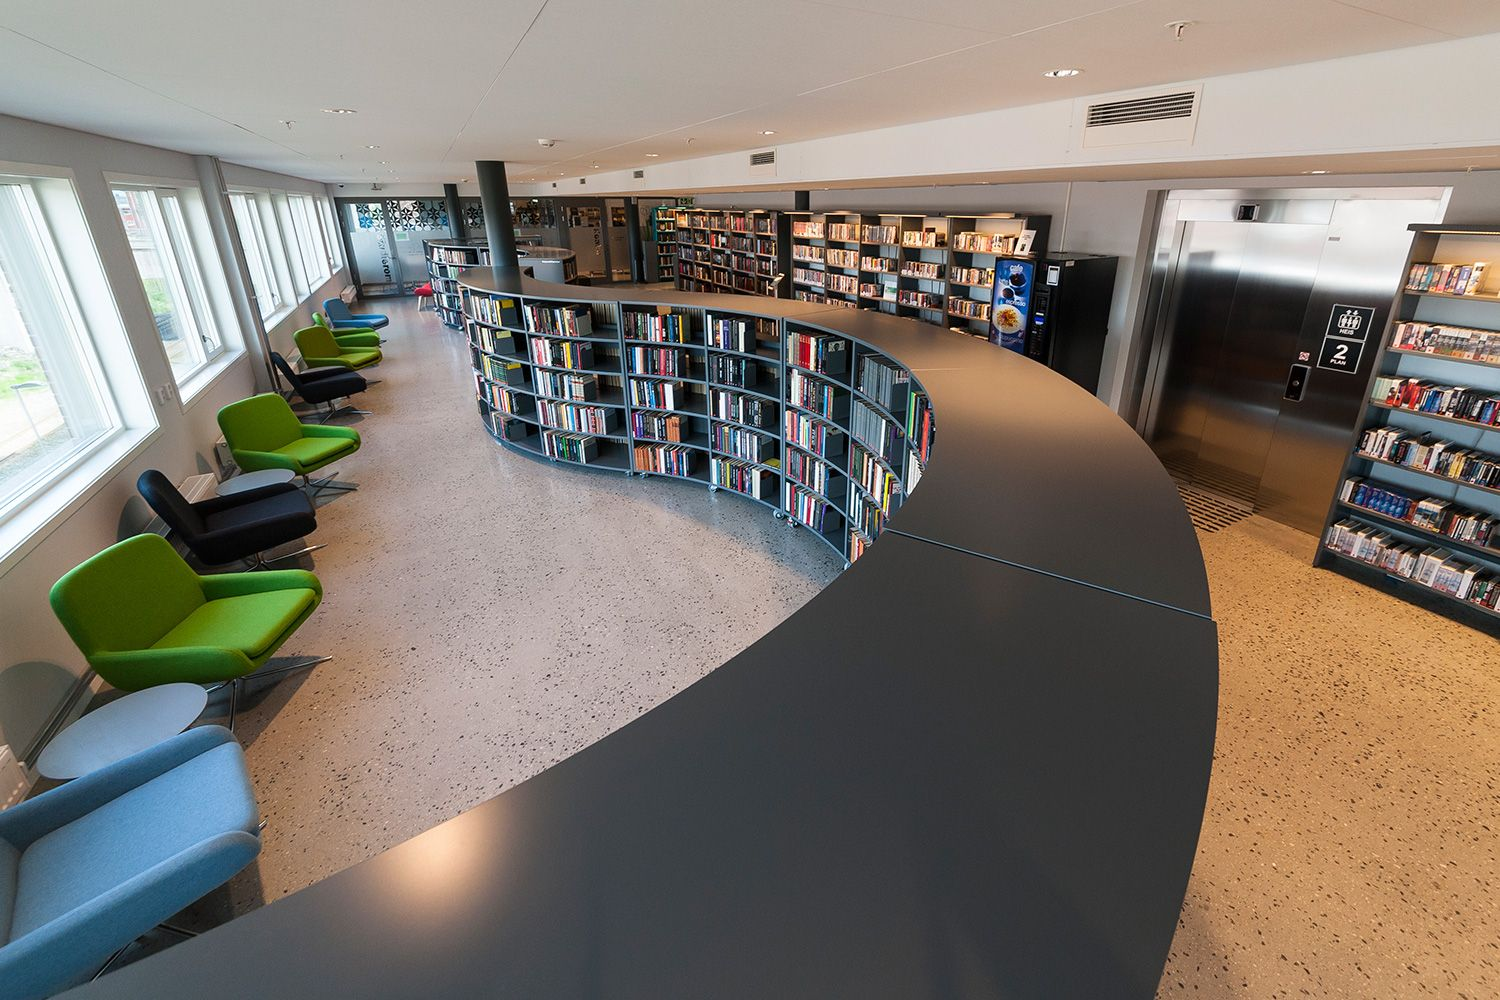 Frontline Shelving System - BCI Libraries | Modern Library ...